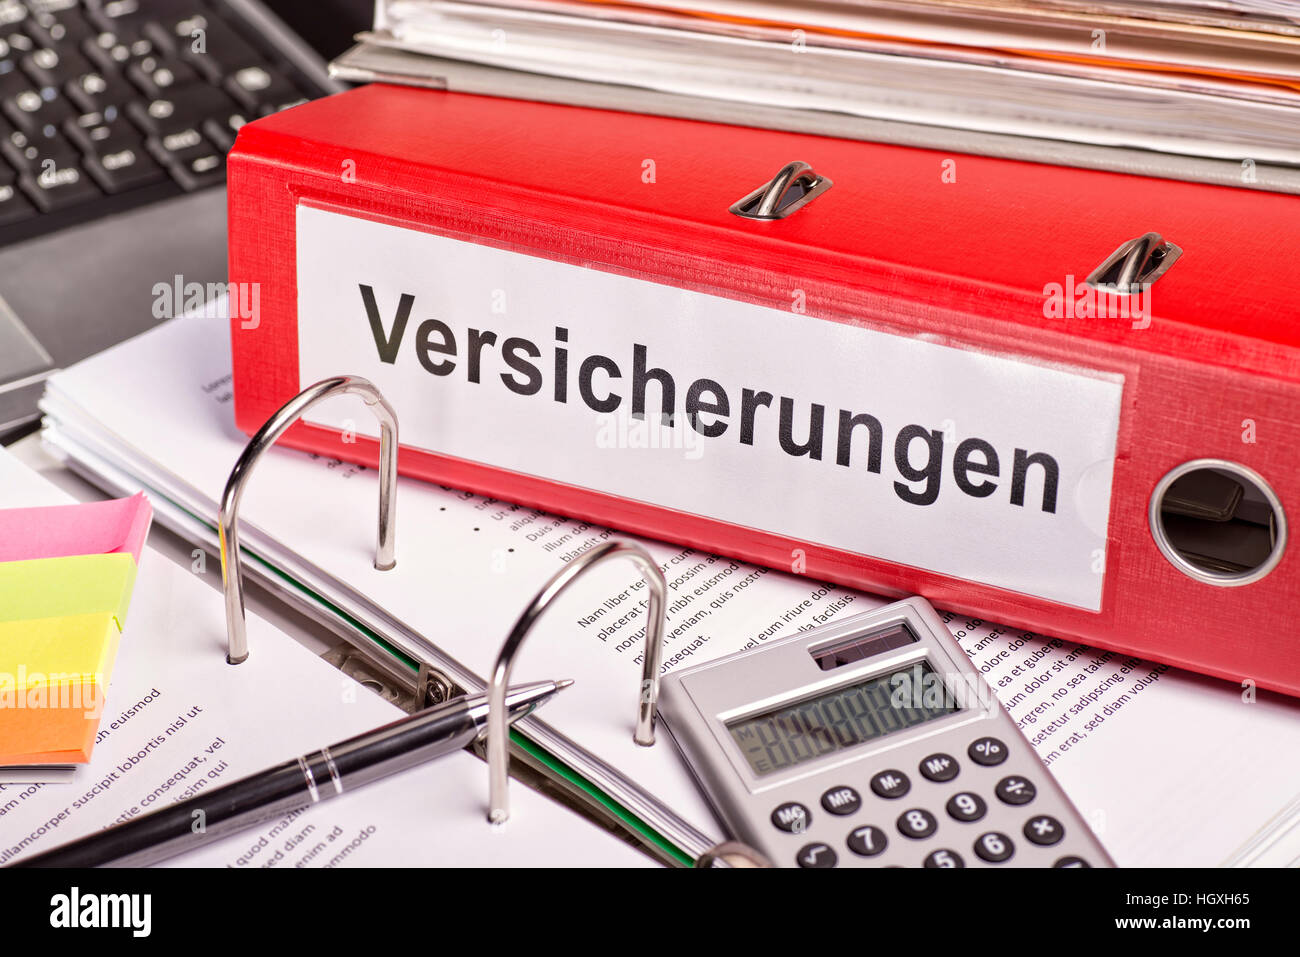 Red file folder with the label 'Versicherungen' for insurance. - Stock Image